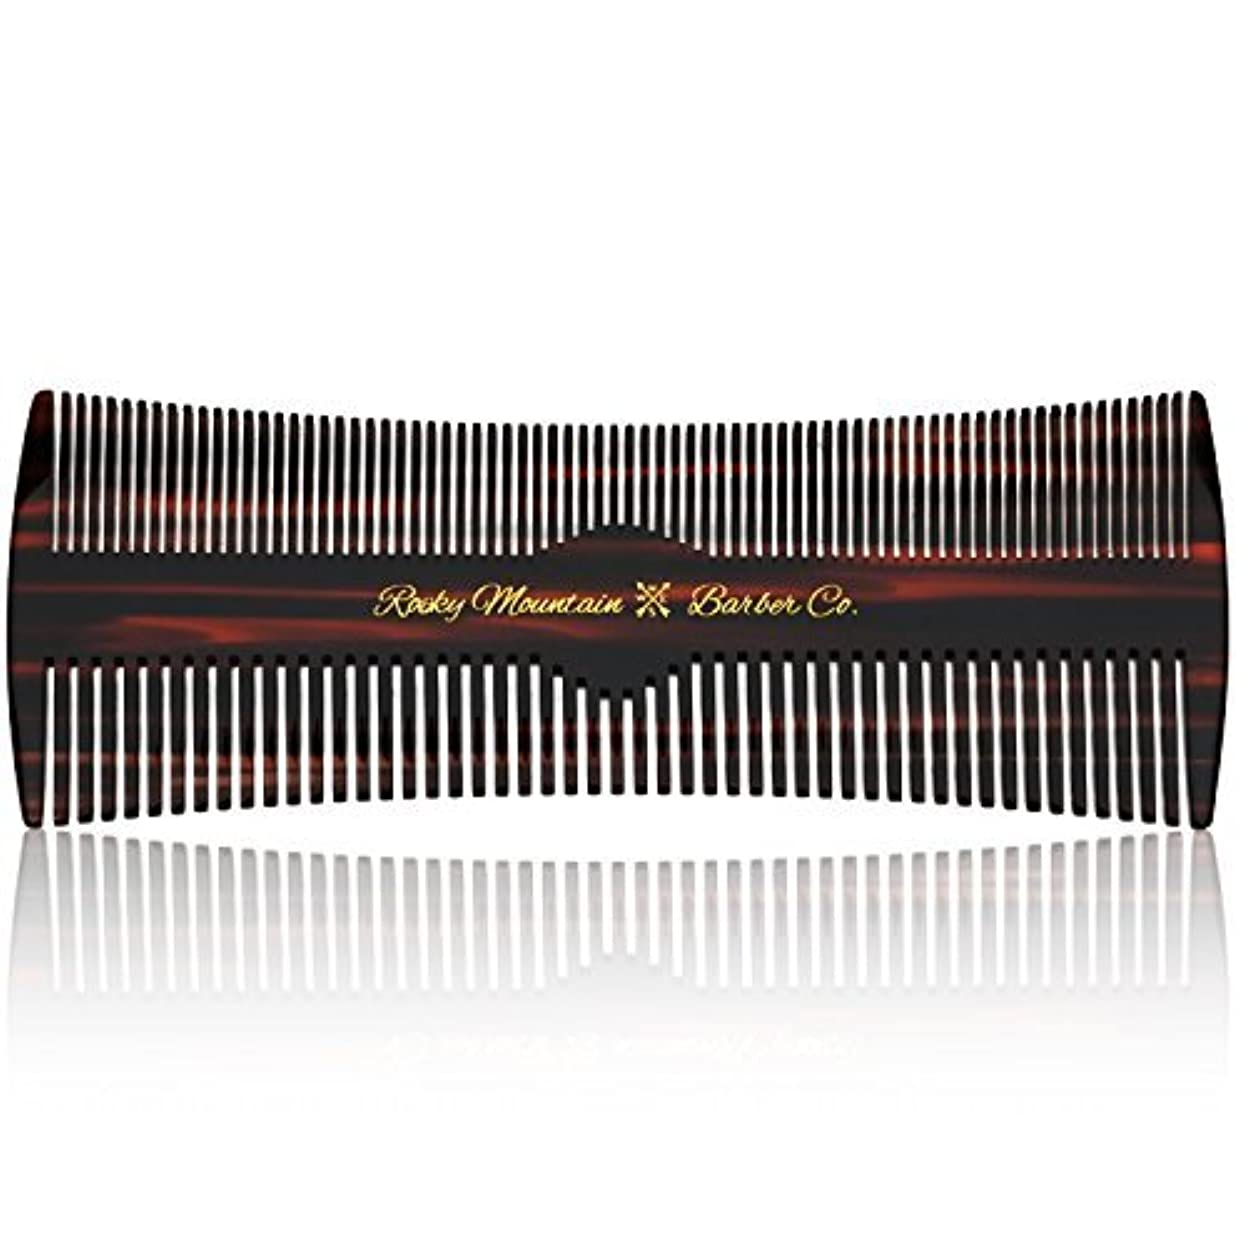 任命公式洞窟Hair Comb - Fine and Medium Tooth Comb for Head Hair, Beard, Mustache - Warp Resistant, No Snag Design with Contour...